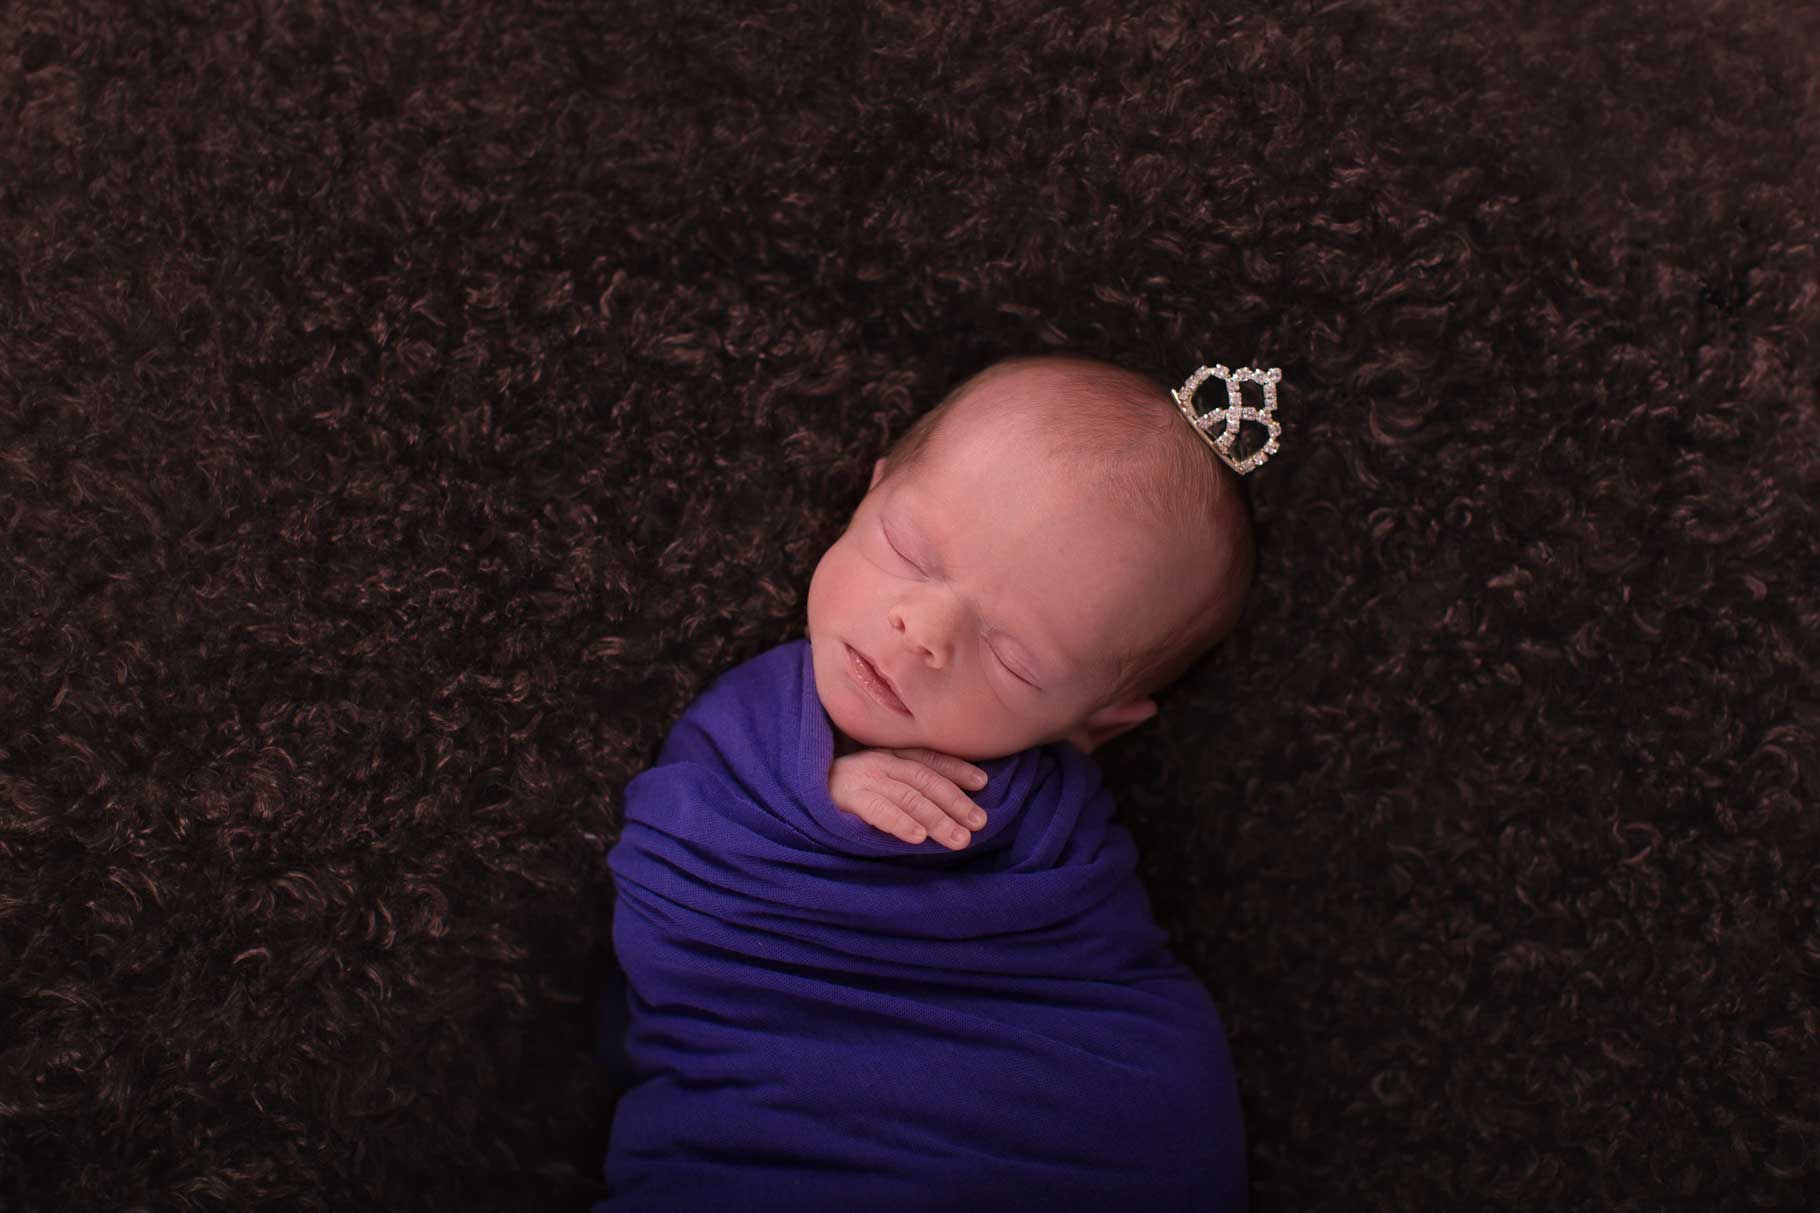 Image of baby swaddled with her hand sticking out